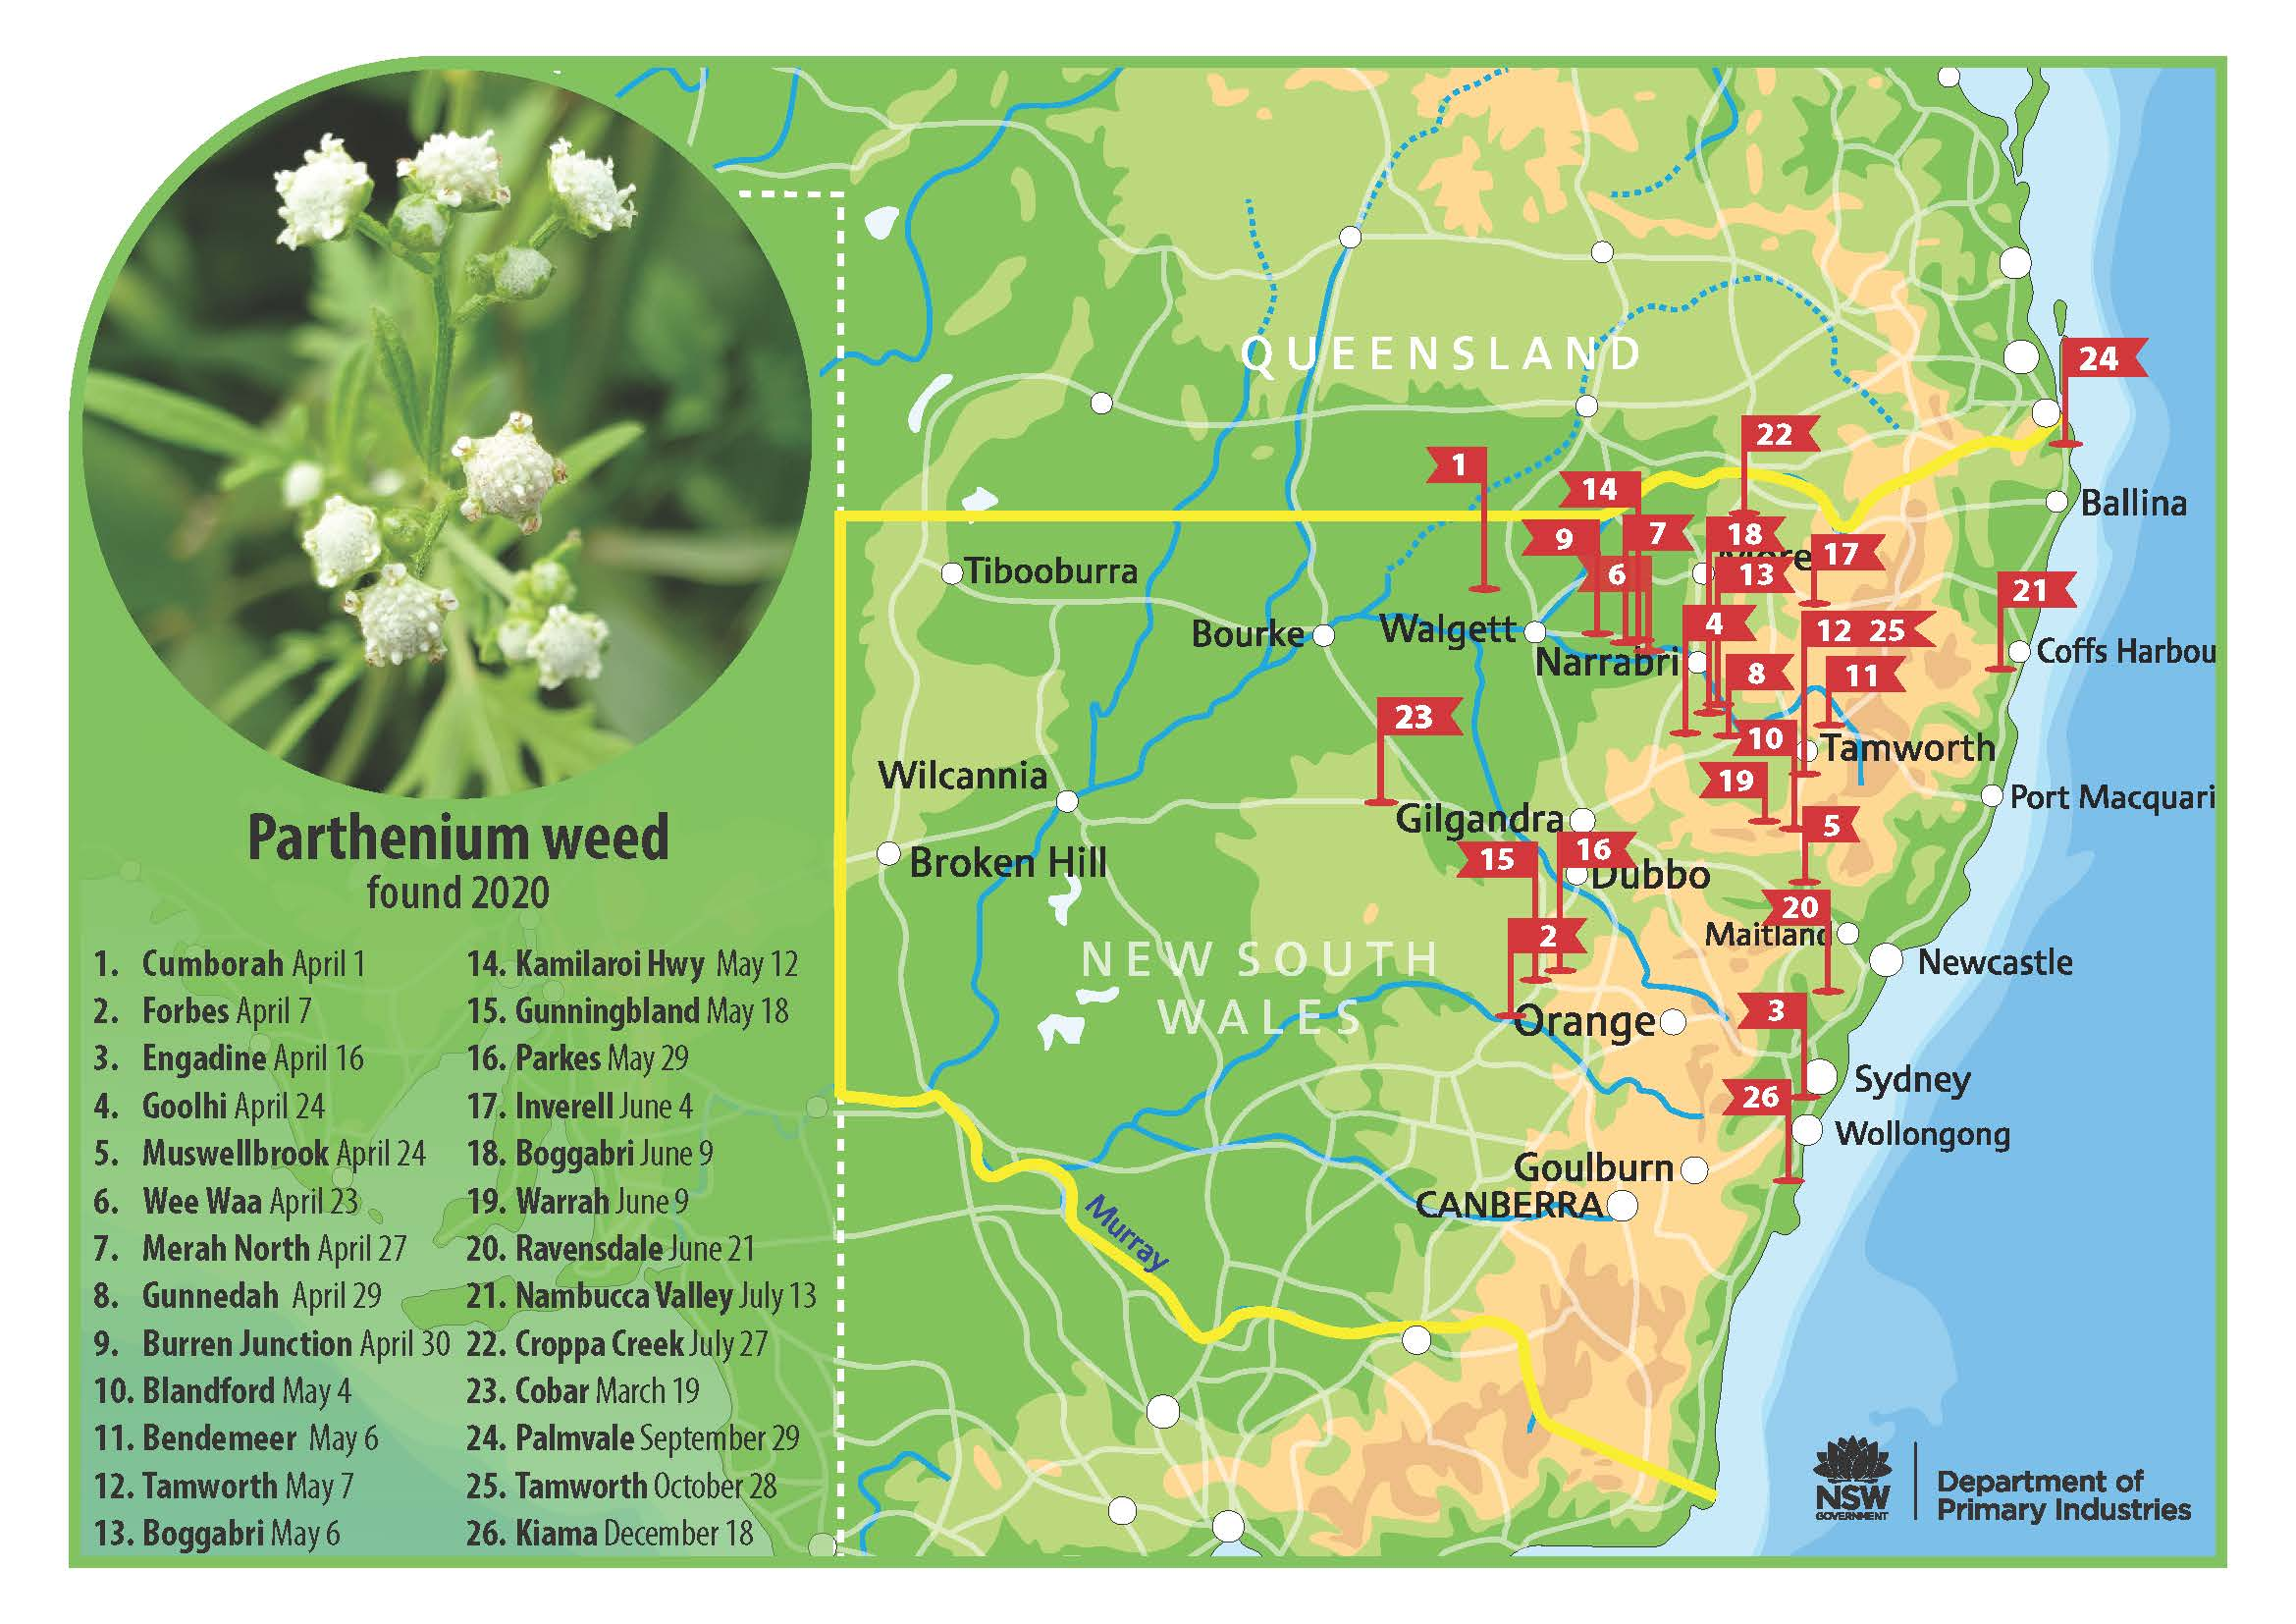 NSW Map showing locations where Parthenium weed was found in 2020